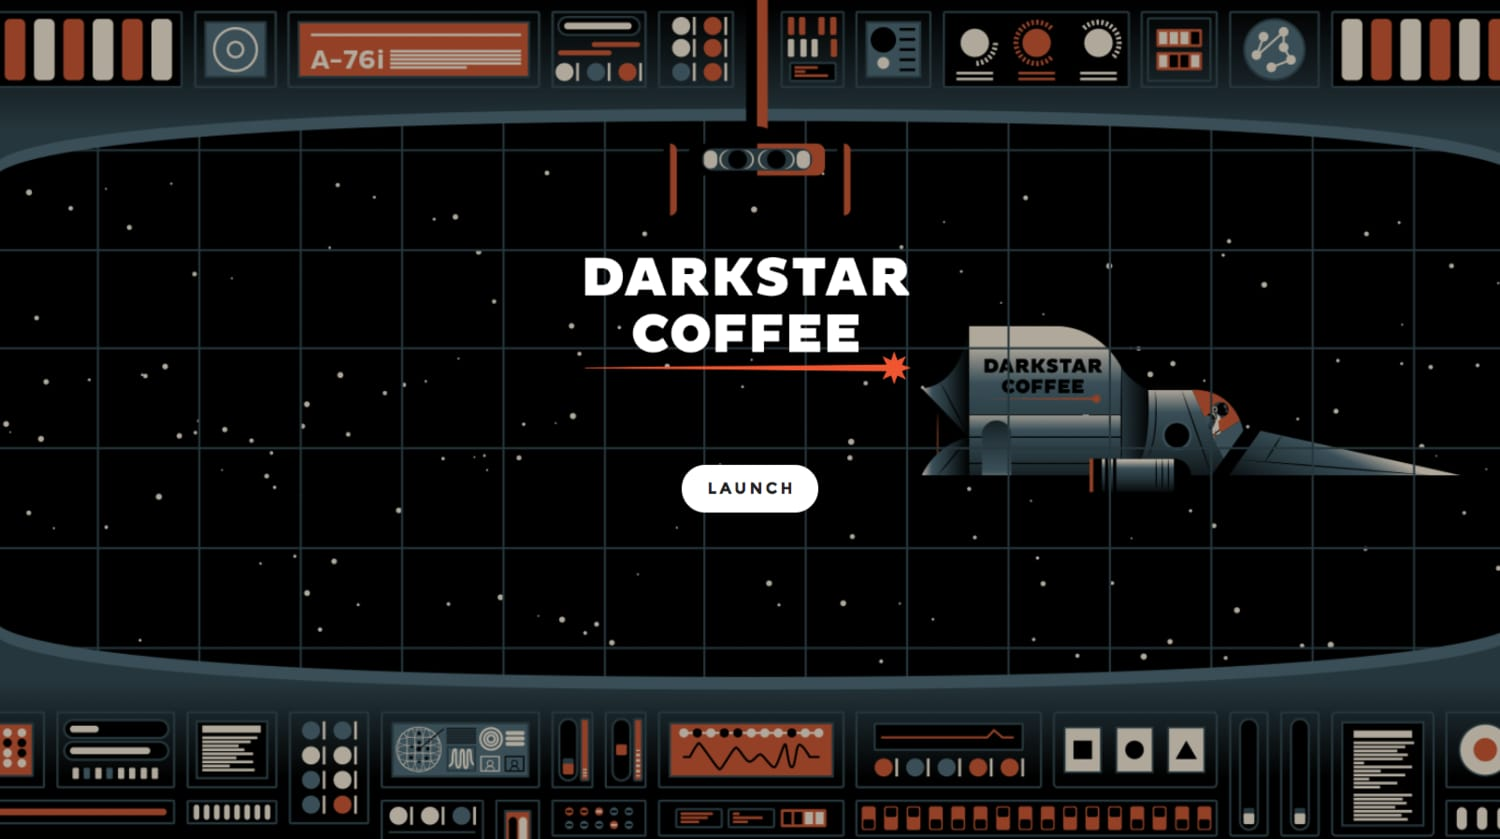 Darkstar Coffee